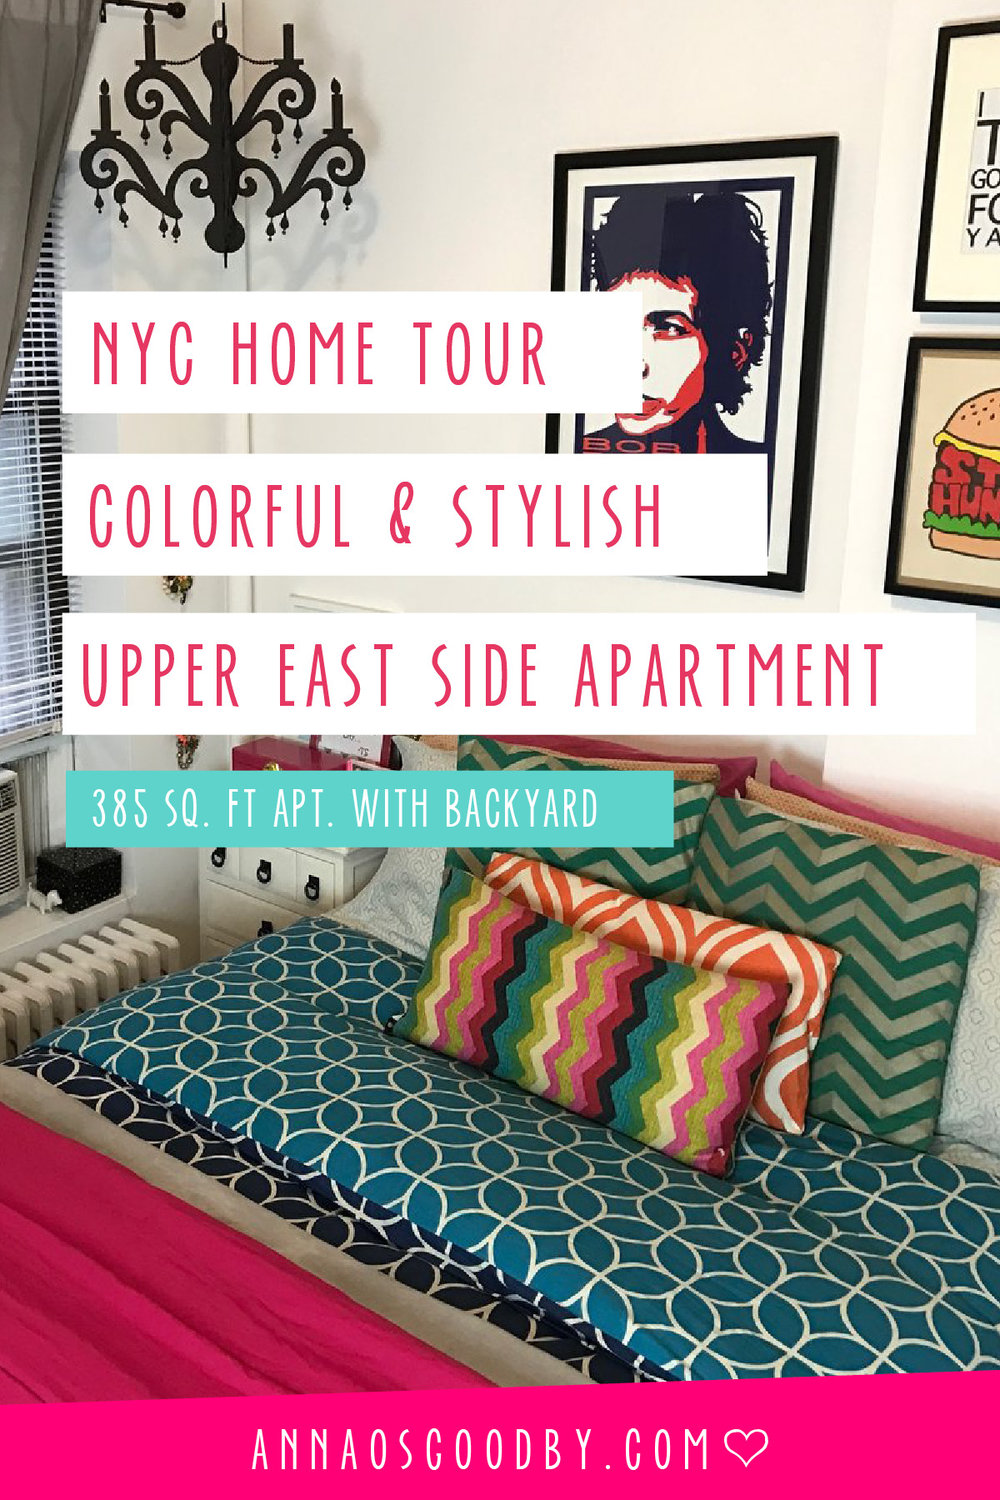 Anna Osgoodby Life + Design :: NYC Home Tour Colorful & Stylish Upper East Side Apartment